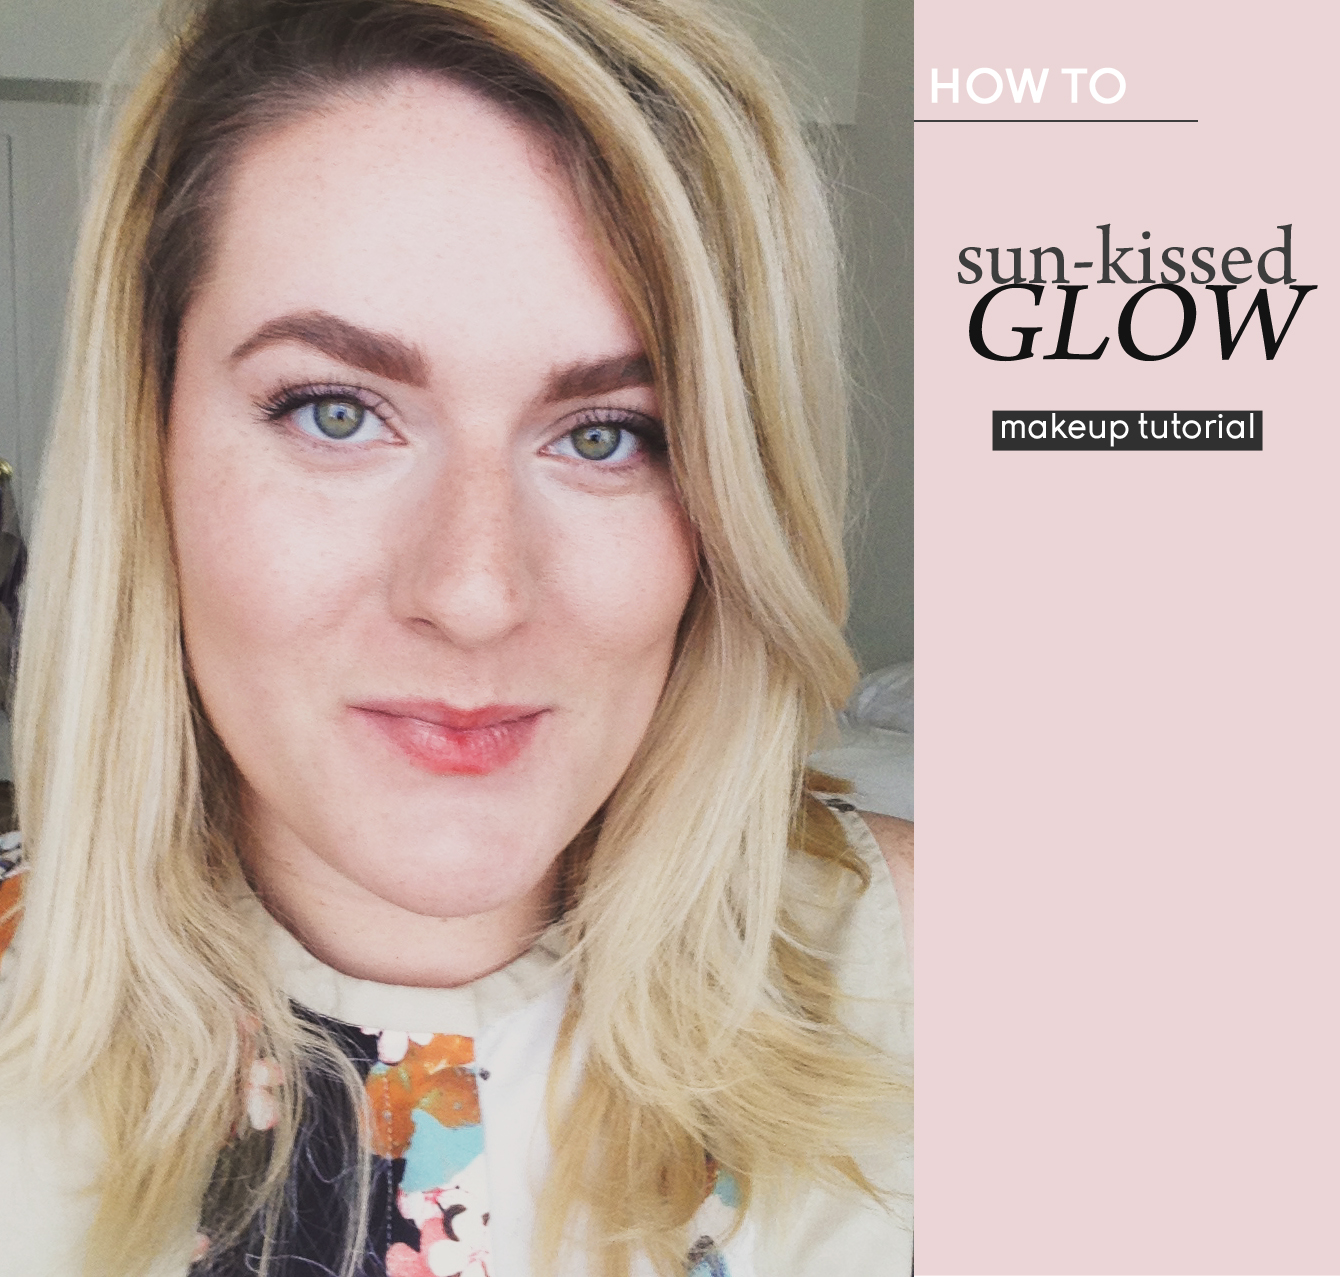 how-to-sun-kissed-glow